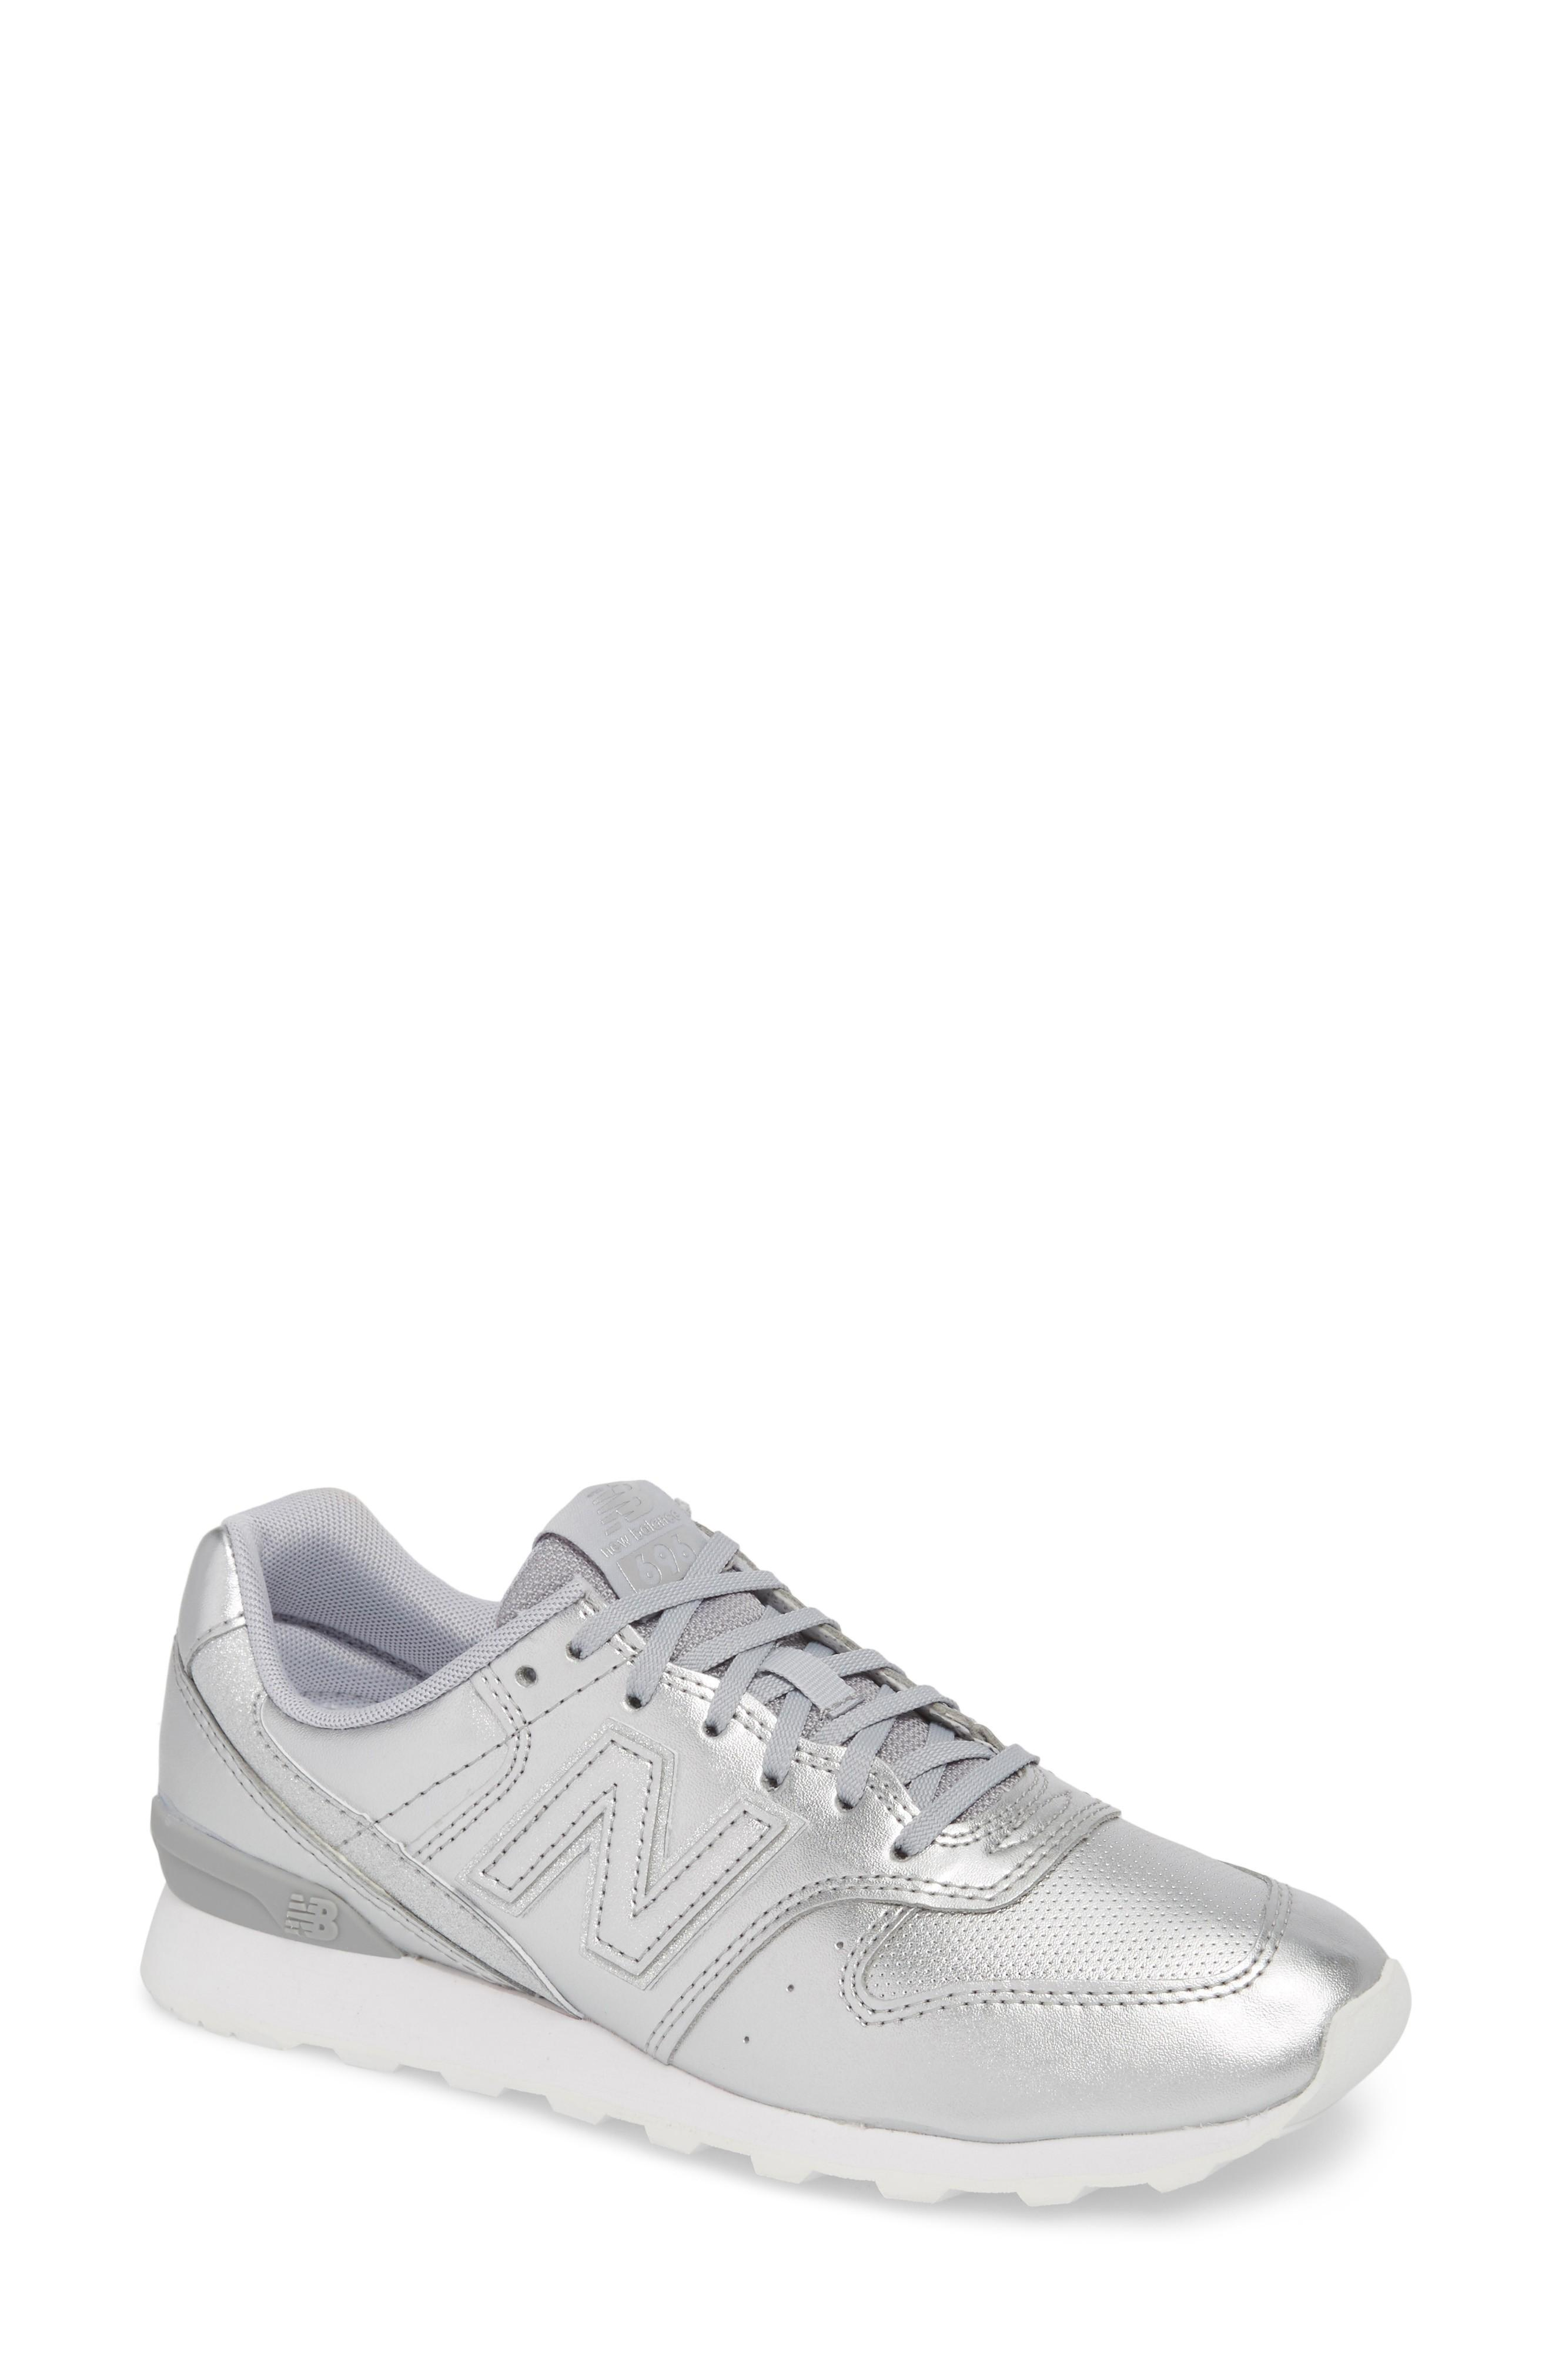 new product 095a7 08514 696 Sneaker in Metallic Silver